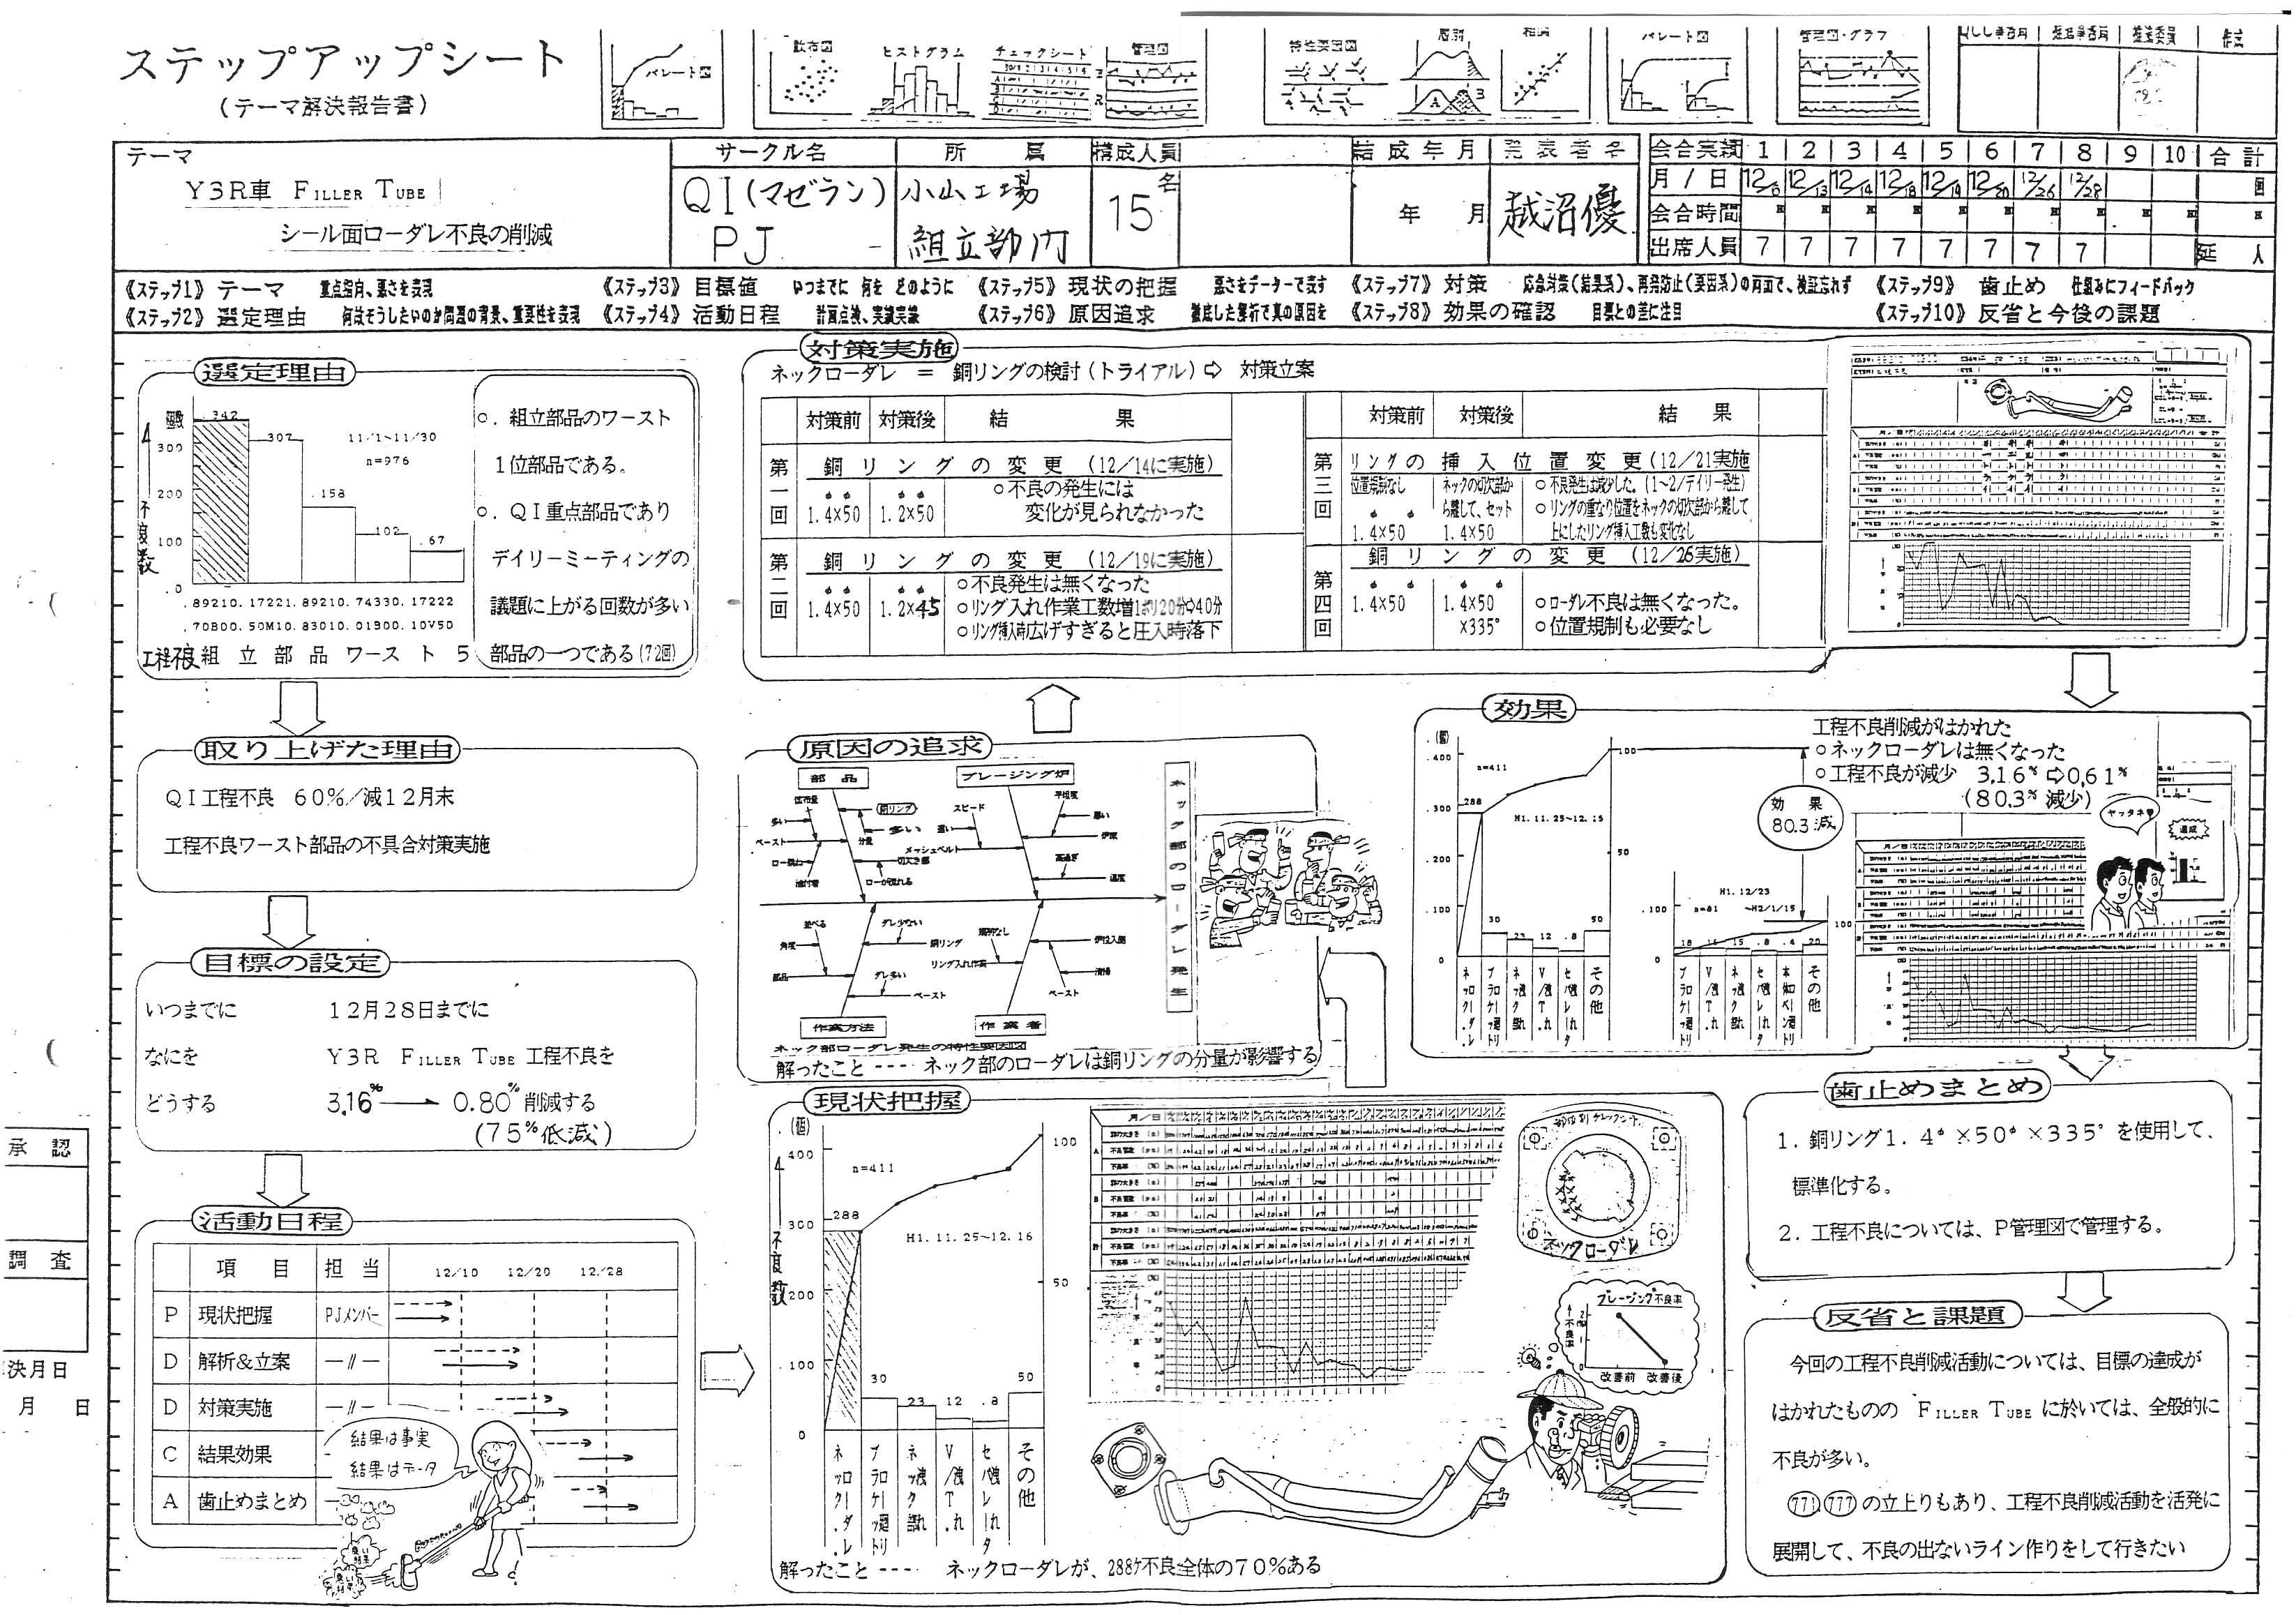 Japanese A3 report